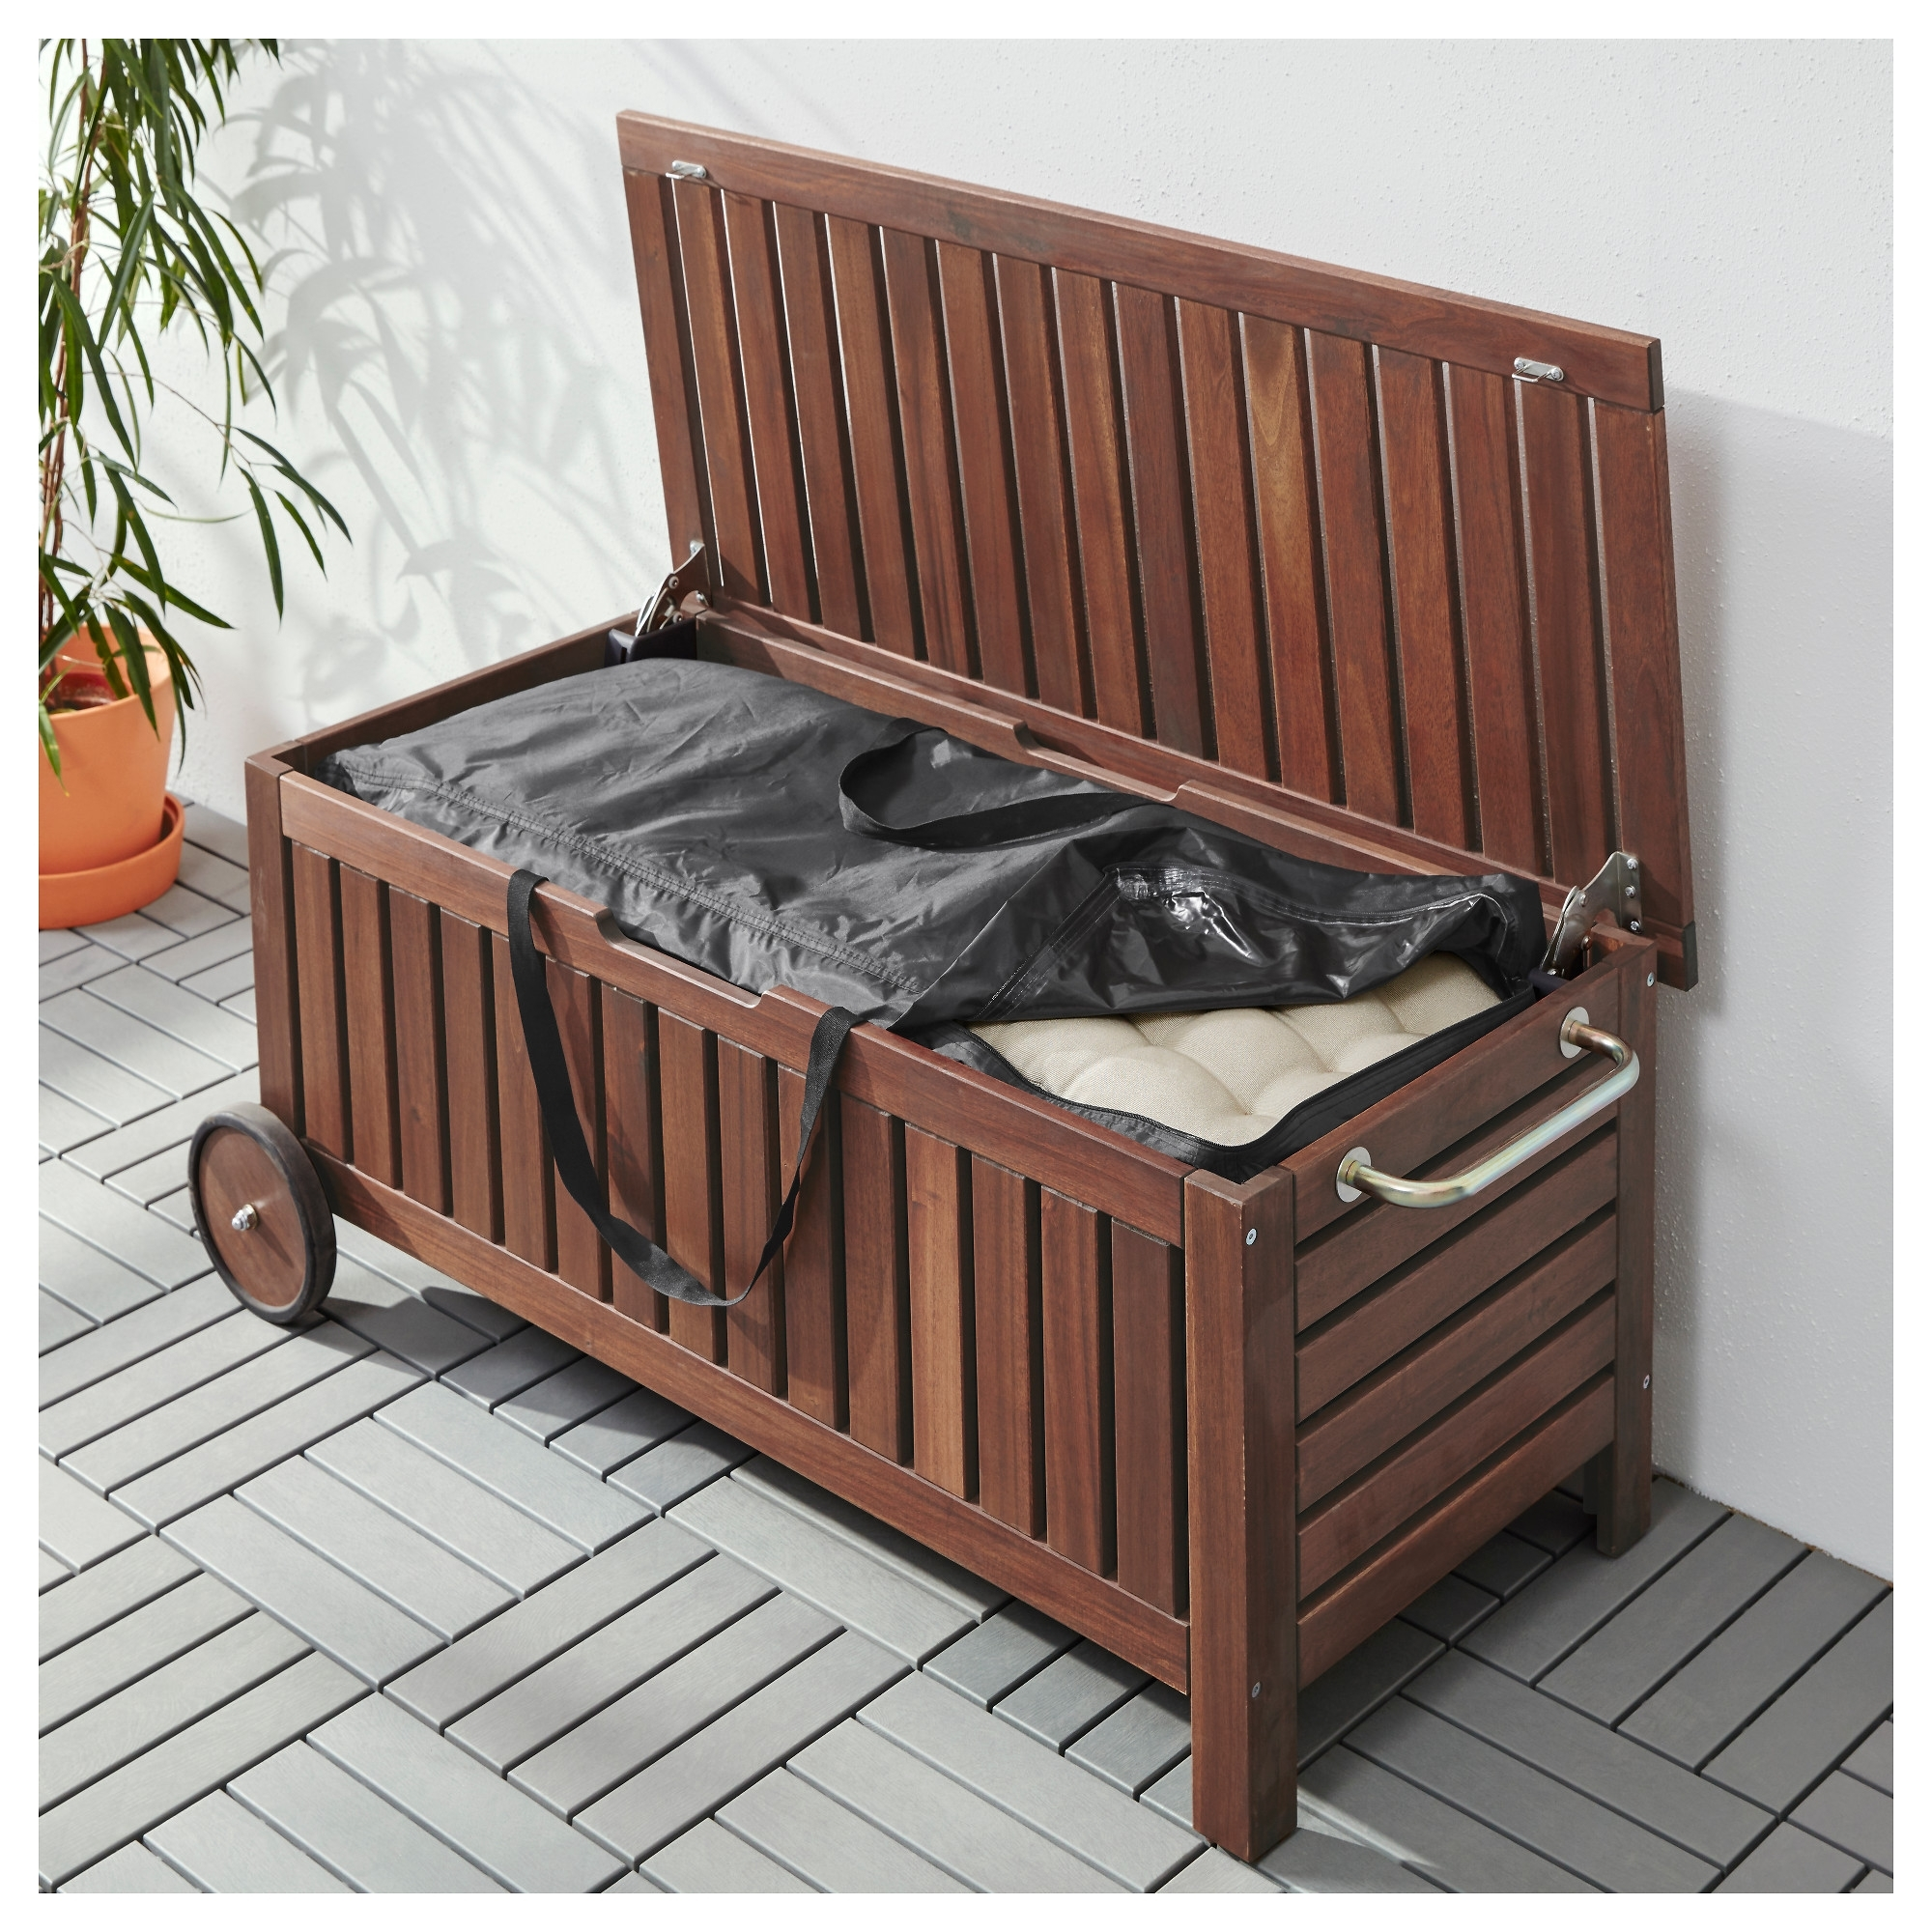 Image of: Toster Storage Bag For Cushions Black 116×49 Cm Ikea Pertaining To Outdoor Cushion Storage Bench Classic Outdoor Cushion Storage Bench